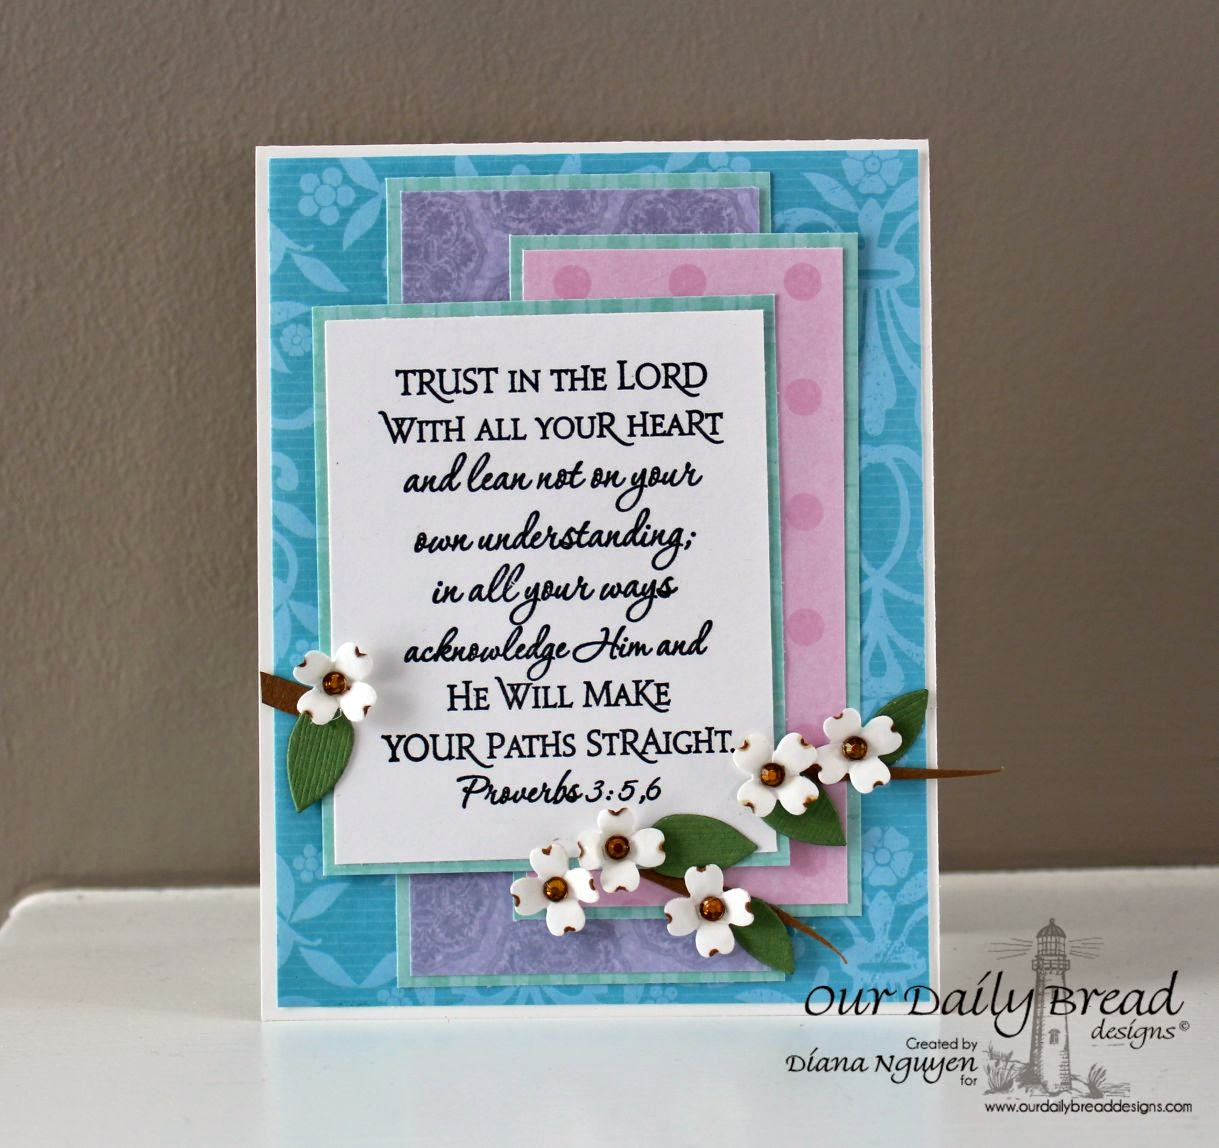 Diana Nguyen, Our Daily Bread Designs, ODBD, Scripture, card